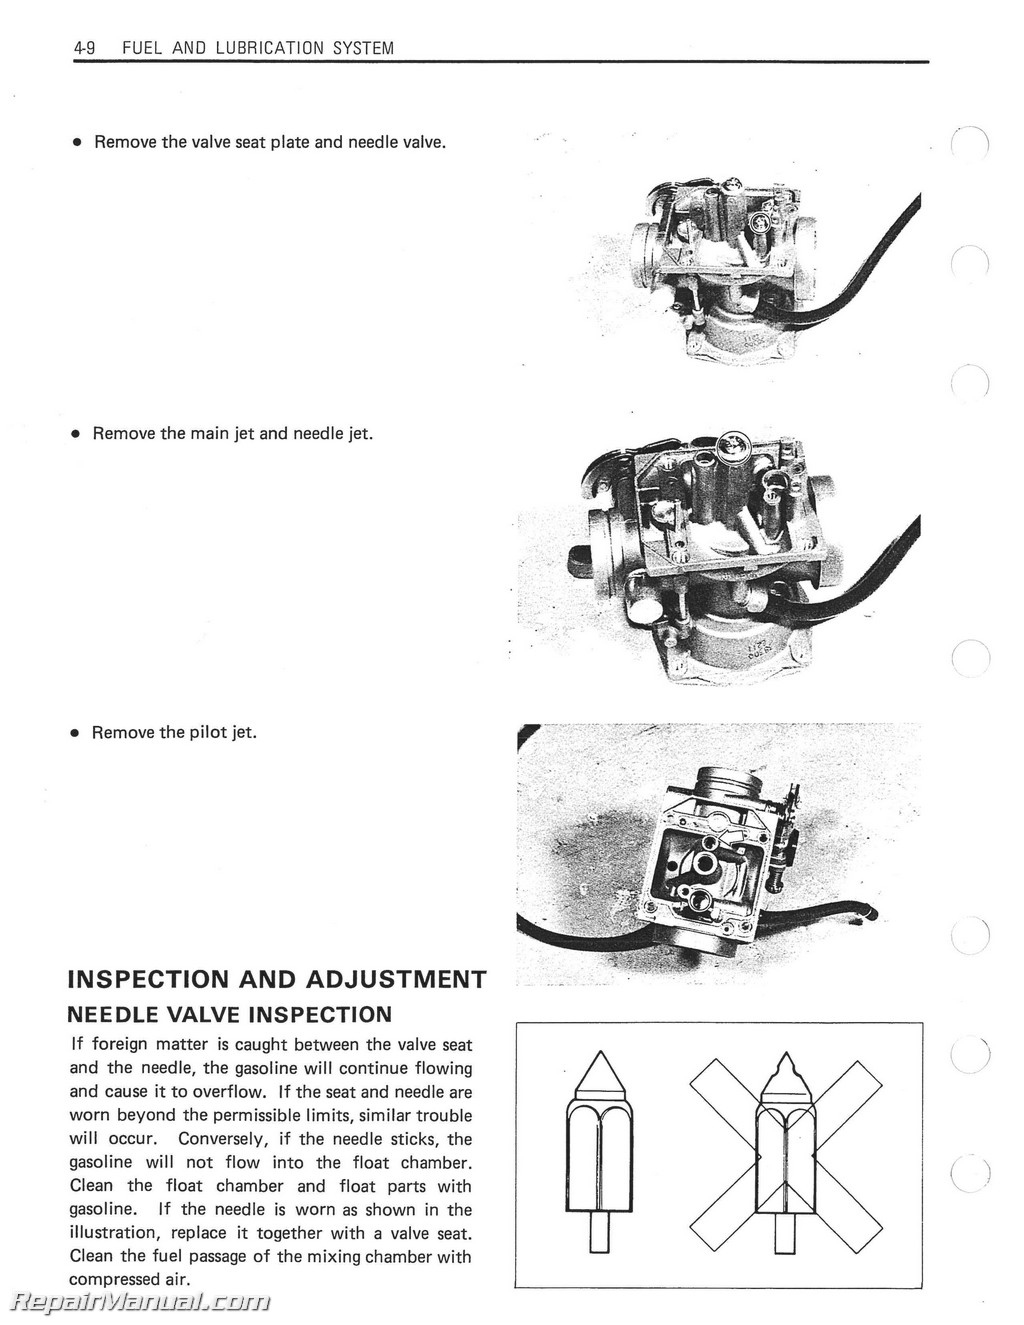 1983 1988 suzuki gn250 motorcycle service manual repair manuals suzuki gn250 manual page 5